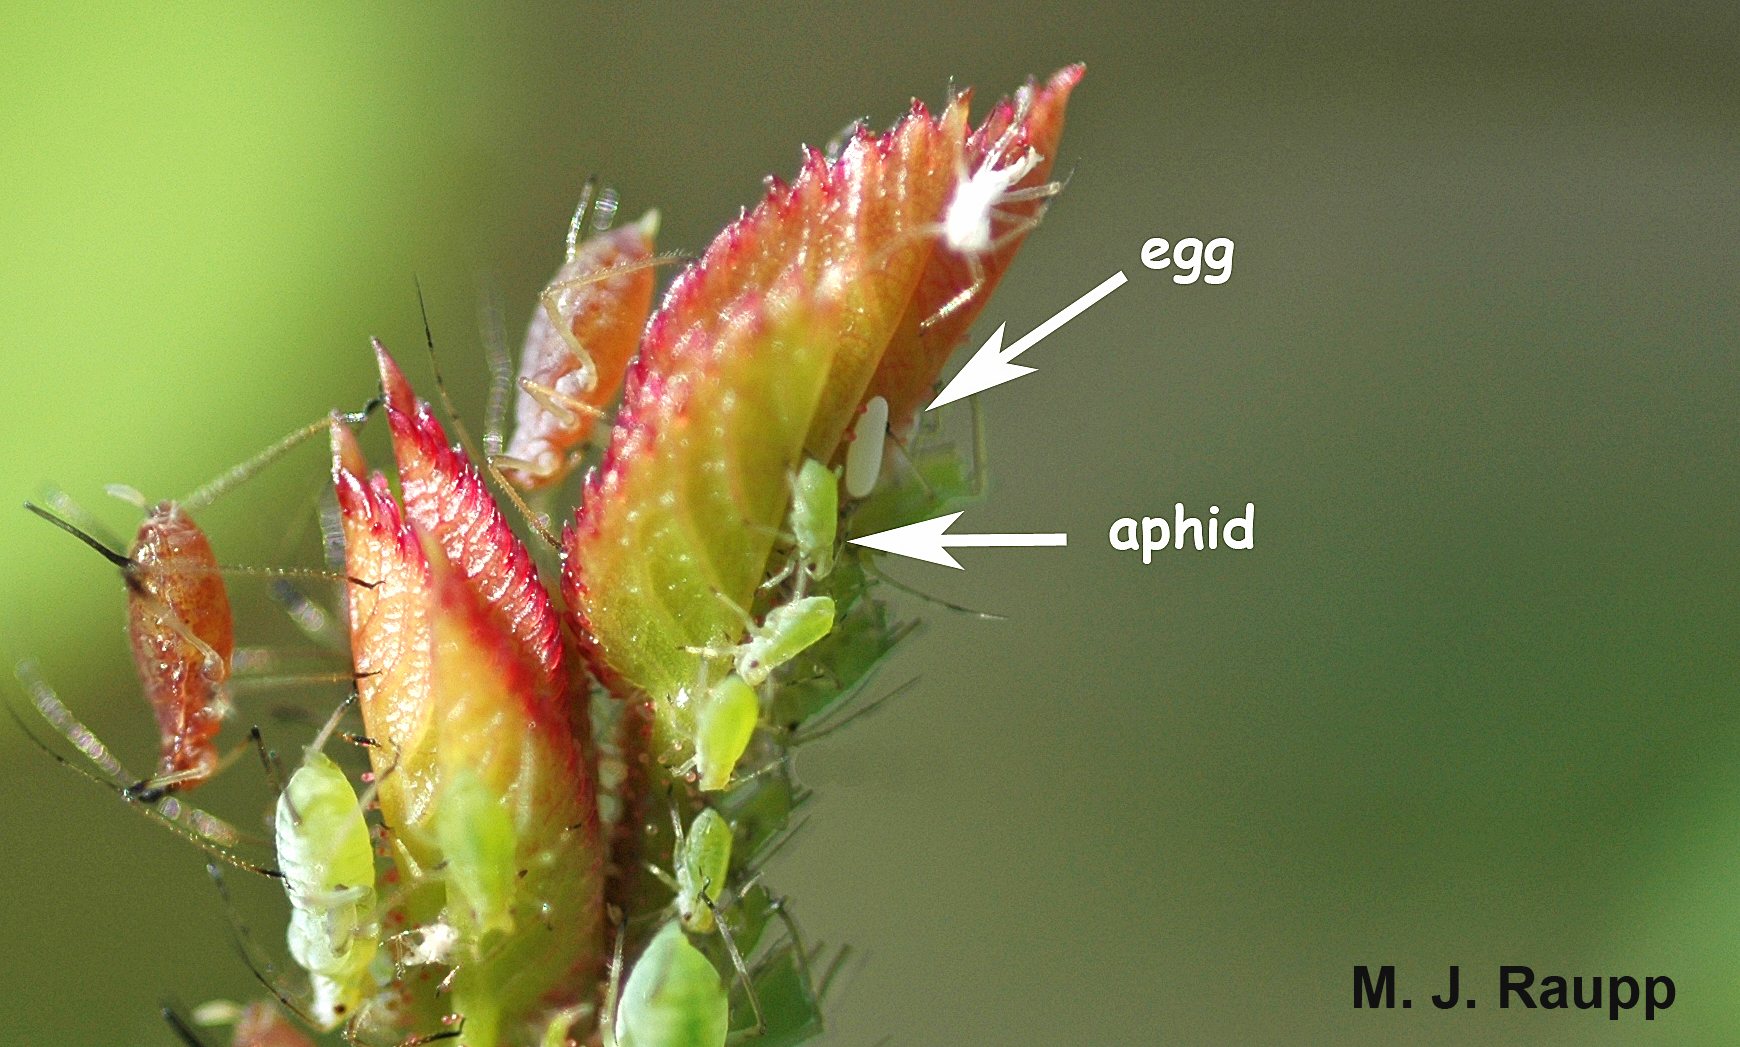 Unsuspecting aphids face certain death when the flower fly egg hatches in a few days.